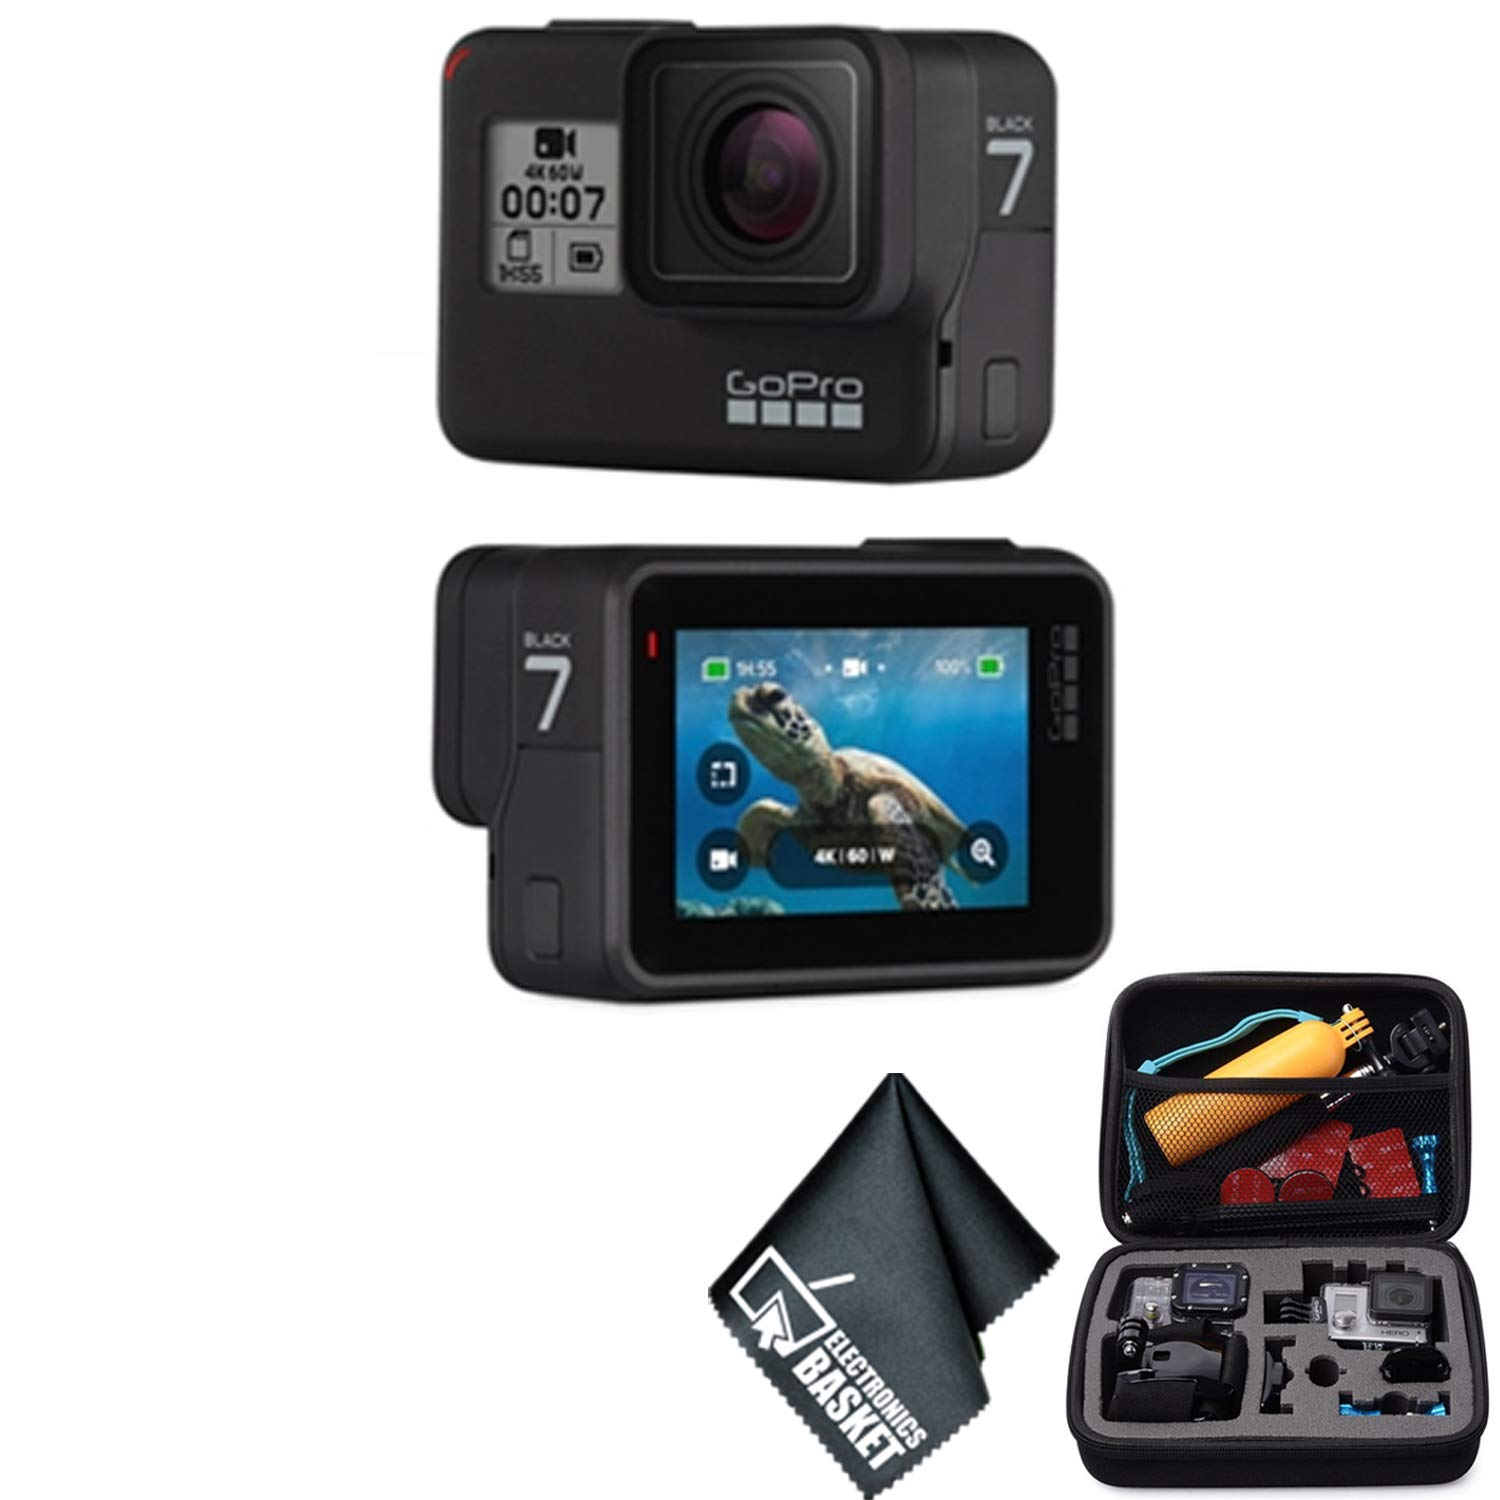 GoPro Hero 7 (Black) Waterproof Digital Action Camera 4K HD Video 12MP Photos Live Streaming Stabilization - Bundle Kit